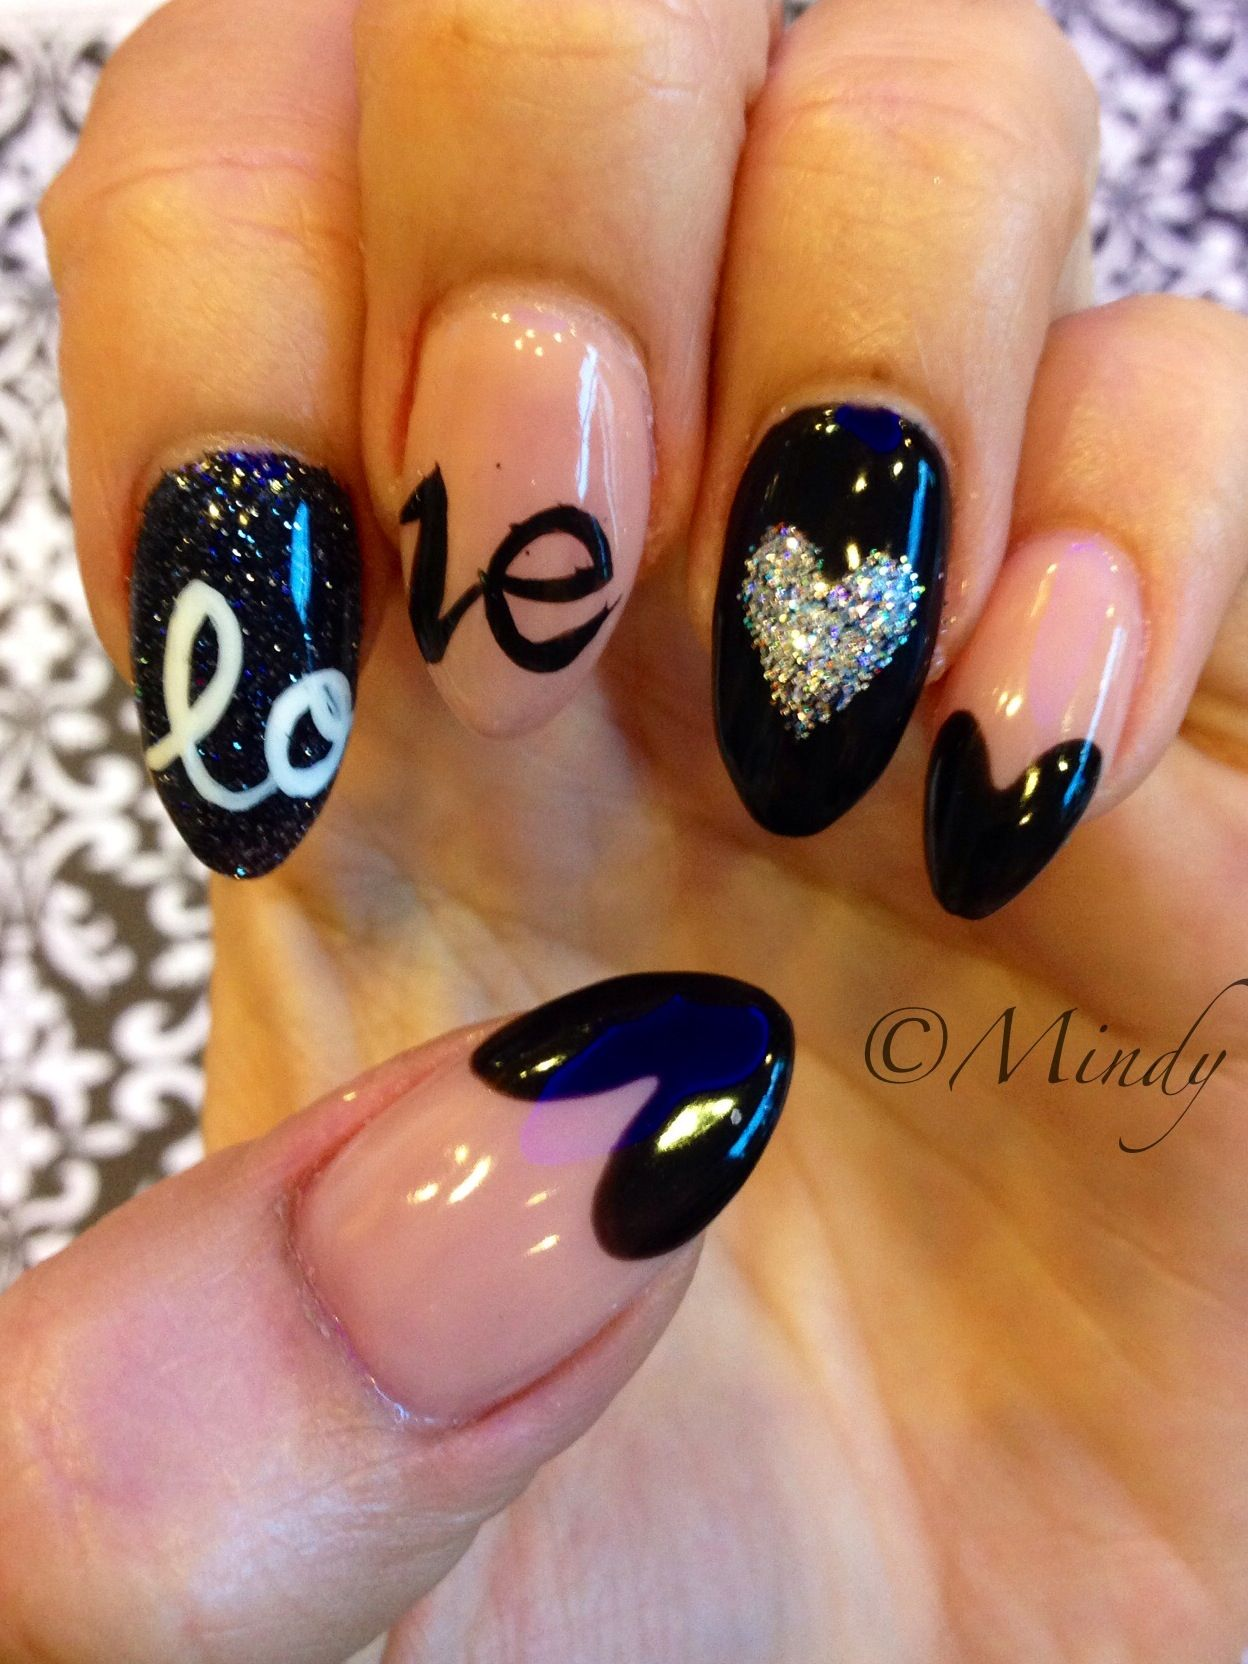 70 heart nail designs stilettos acrylics and nail nail 70 heart nail designs prinsesfo Choice Image